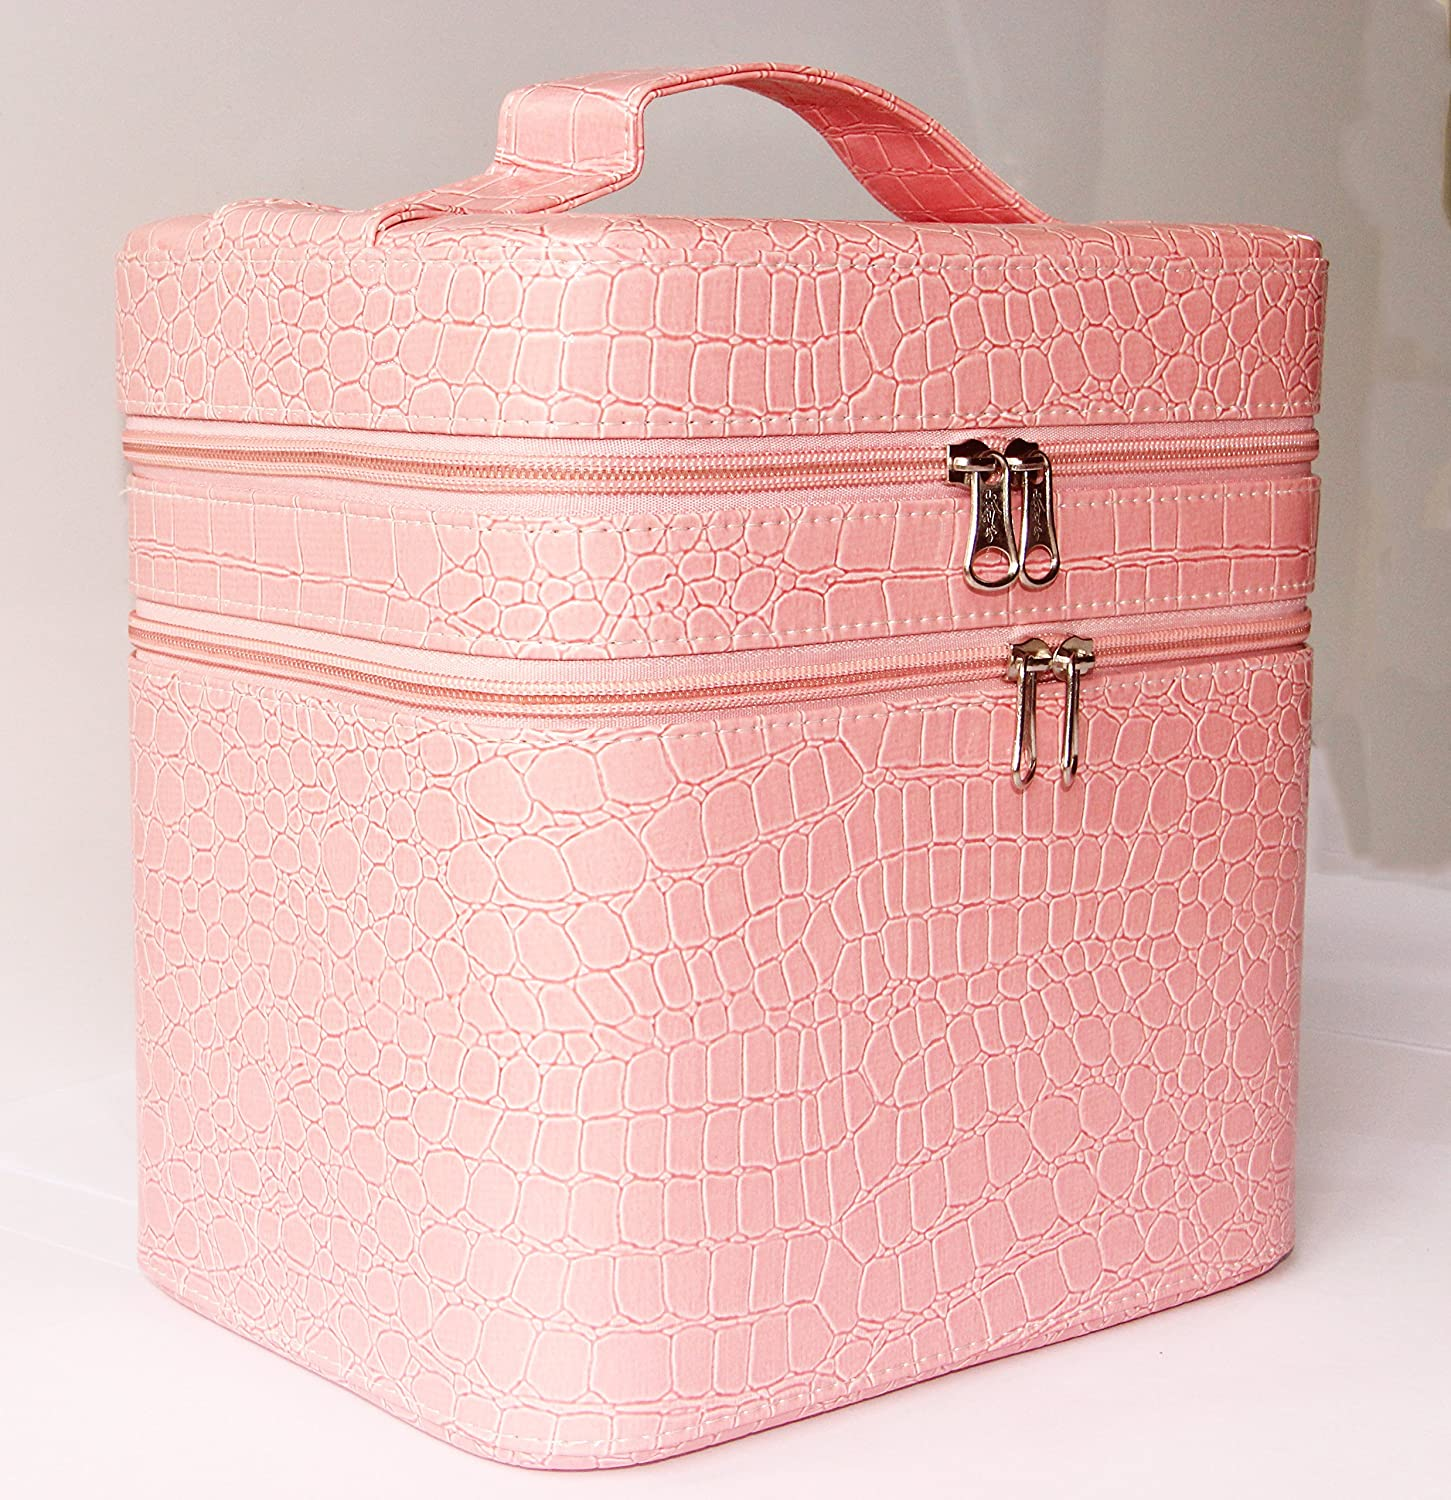 Amazon.com  Annie Queen Faux Crocodile Pattern Cosmetic Storage Cases Makeup Box Pink by Annie Queen  Beauty & Amazon.com : Annie Queen Faux Crocodile Pattern Cosmetic Storage ...